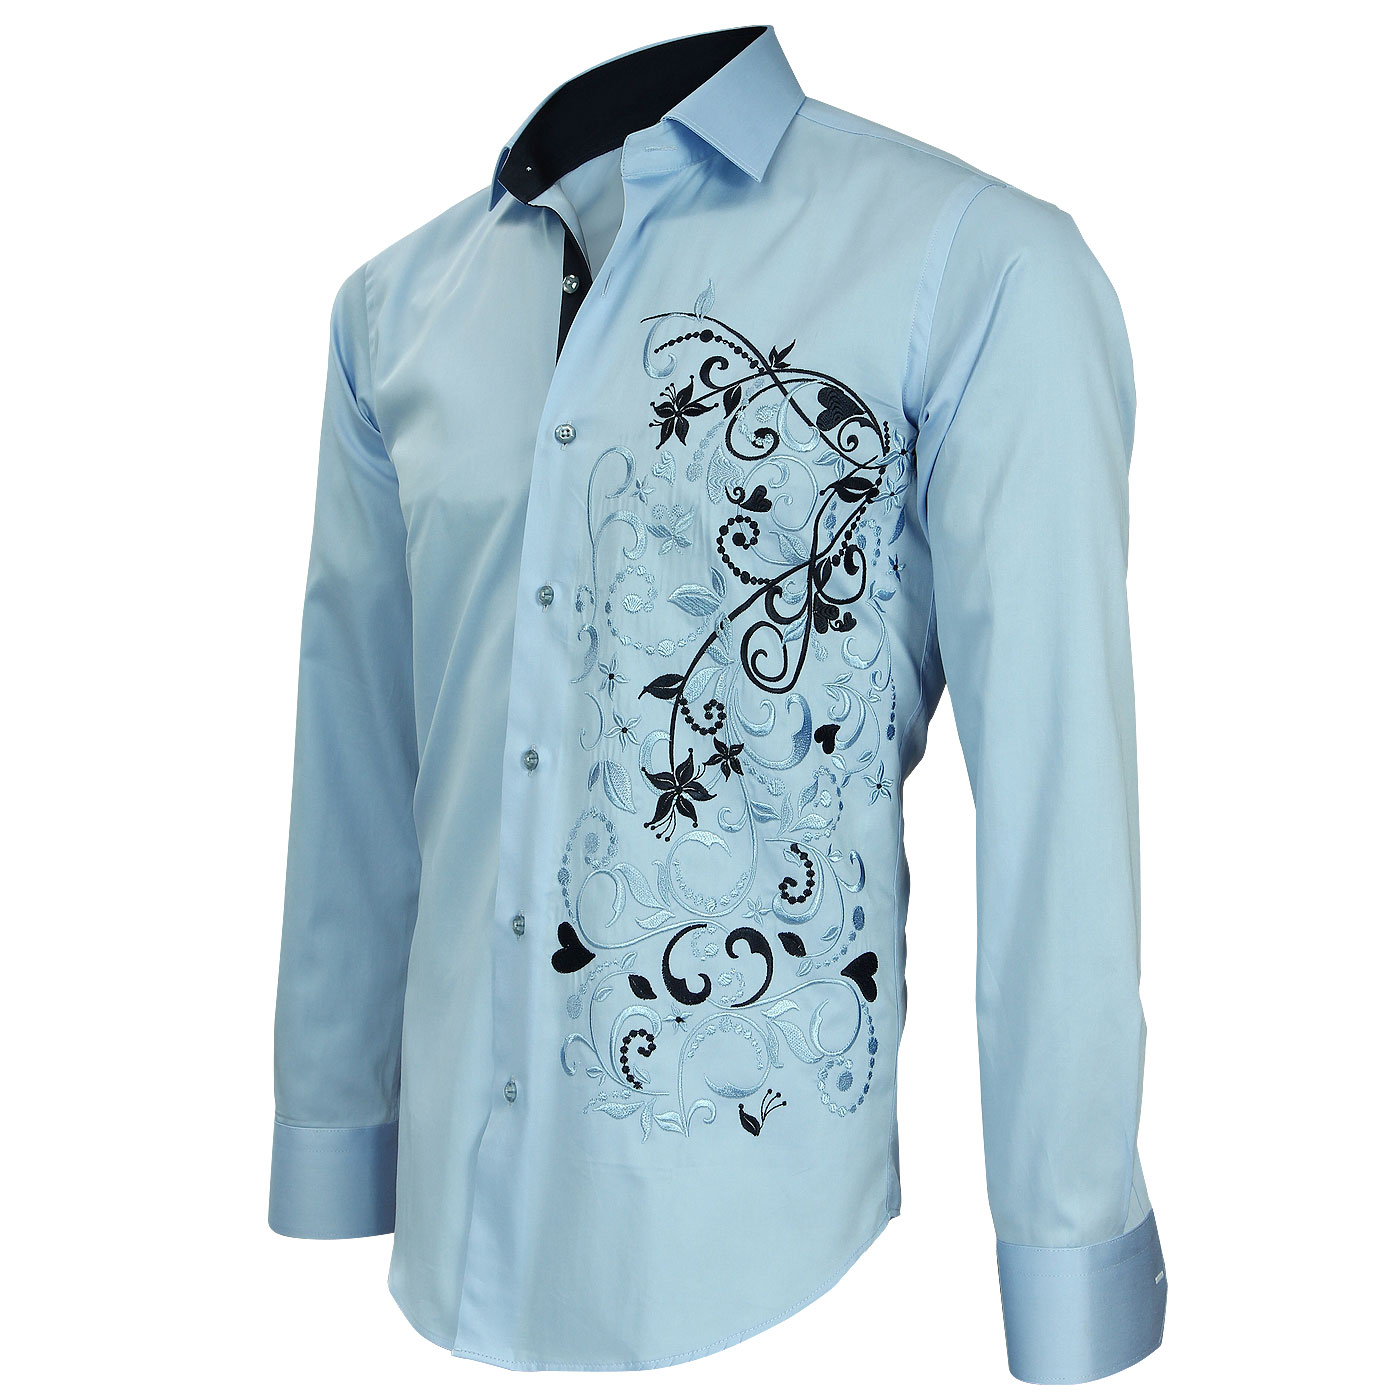 Embroidered Shirt with Embroidery Exclusive by Chemiseweb